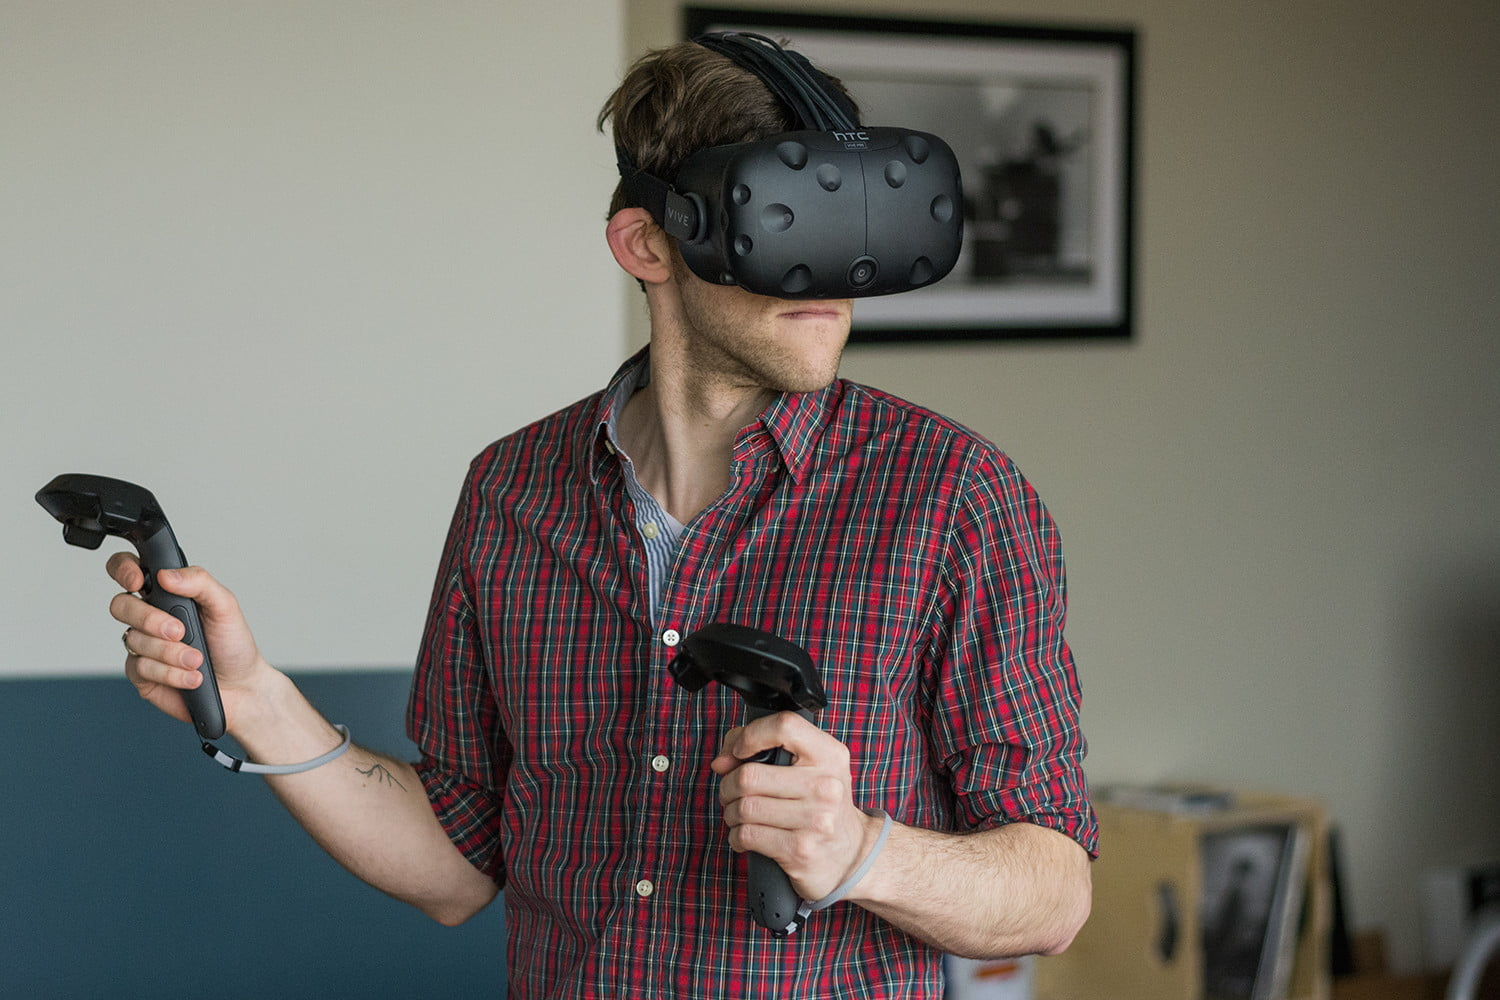 Steam Broadcasting Now Enables Users To Stream Their Vr Games To Anyone